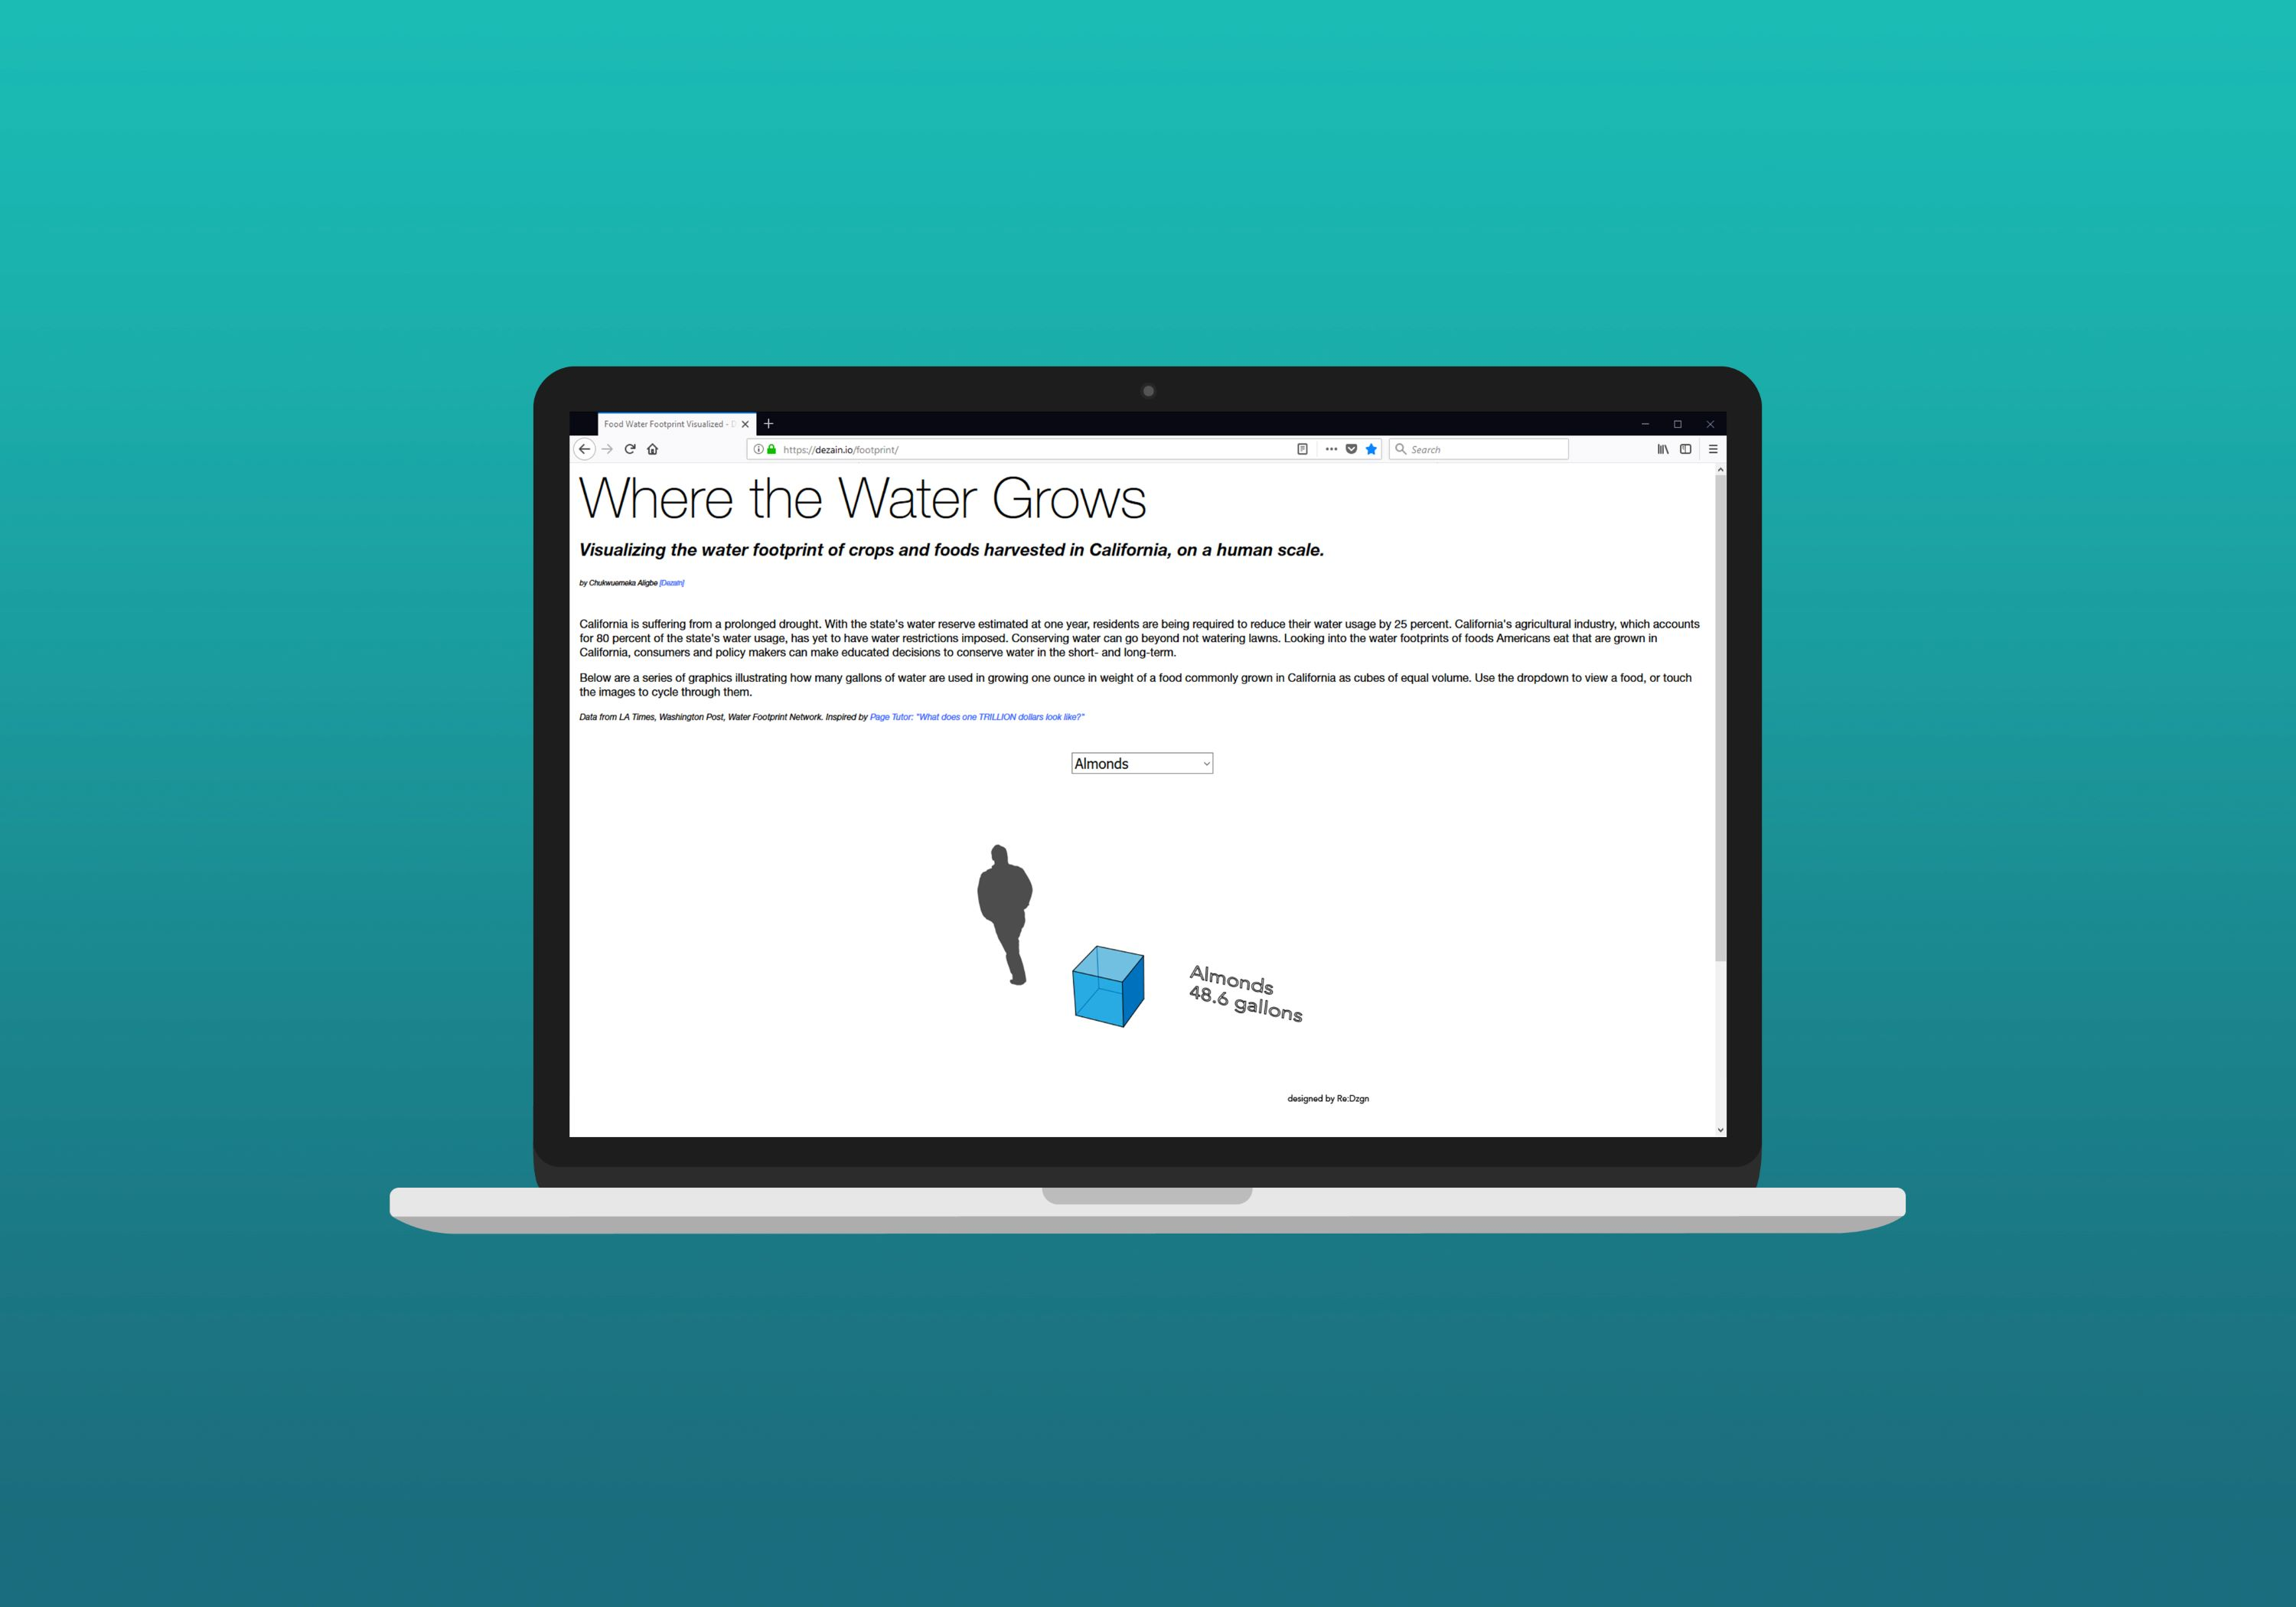 Where the Water Grows Desktop Mockup